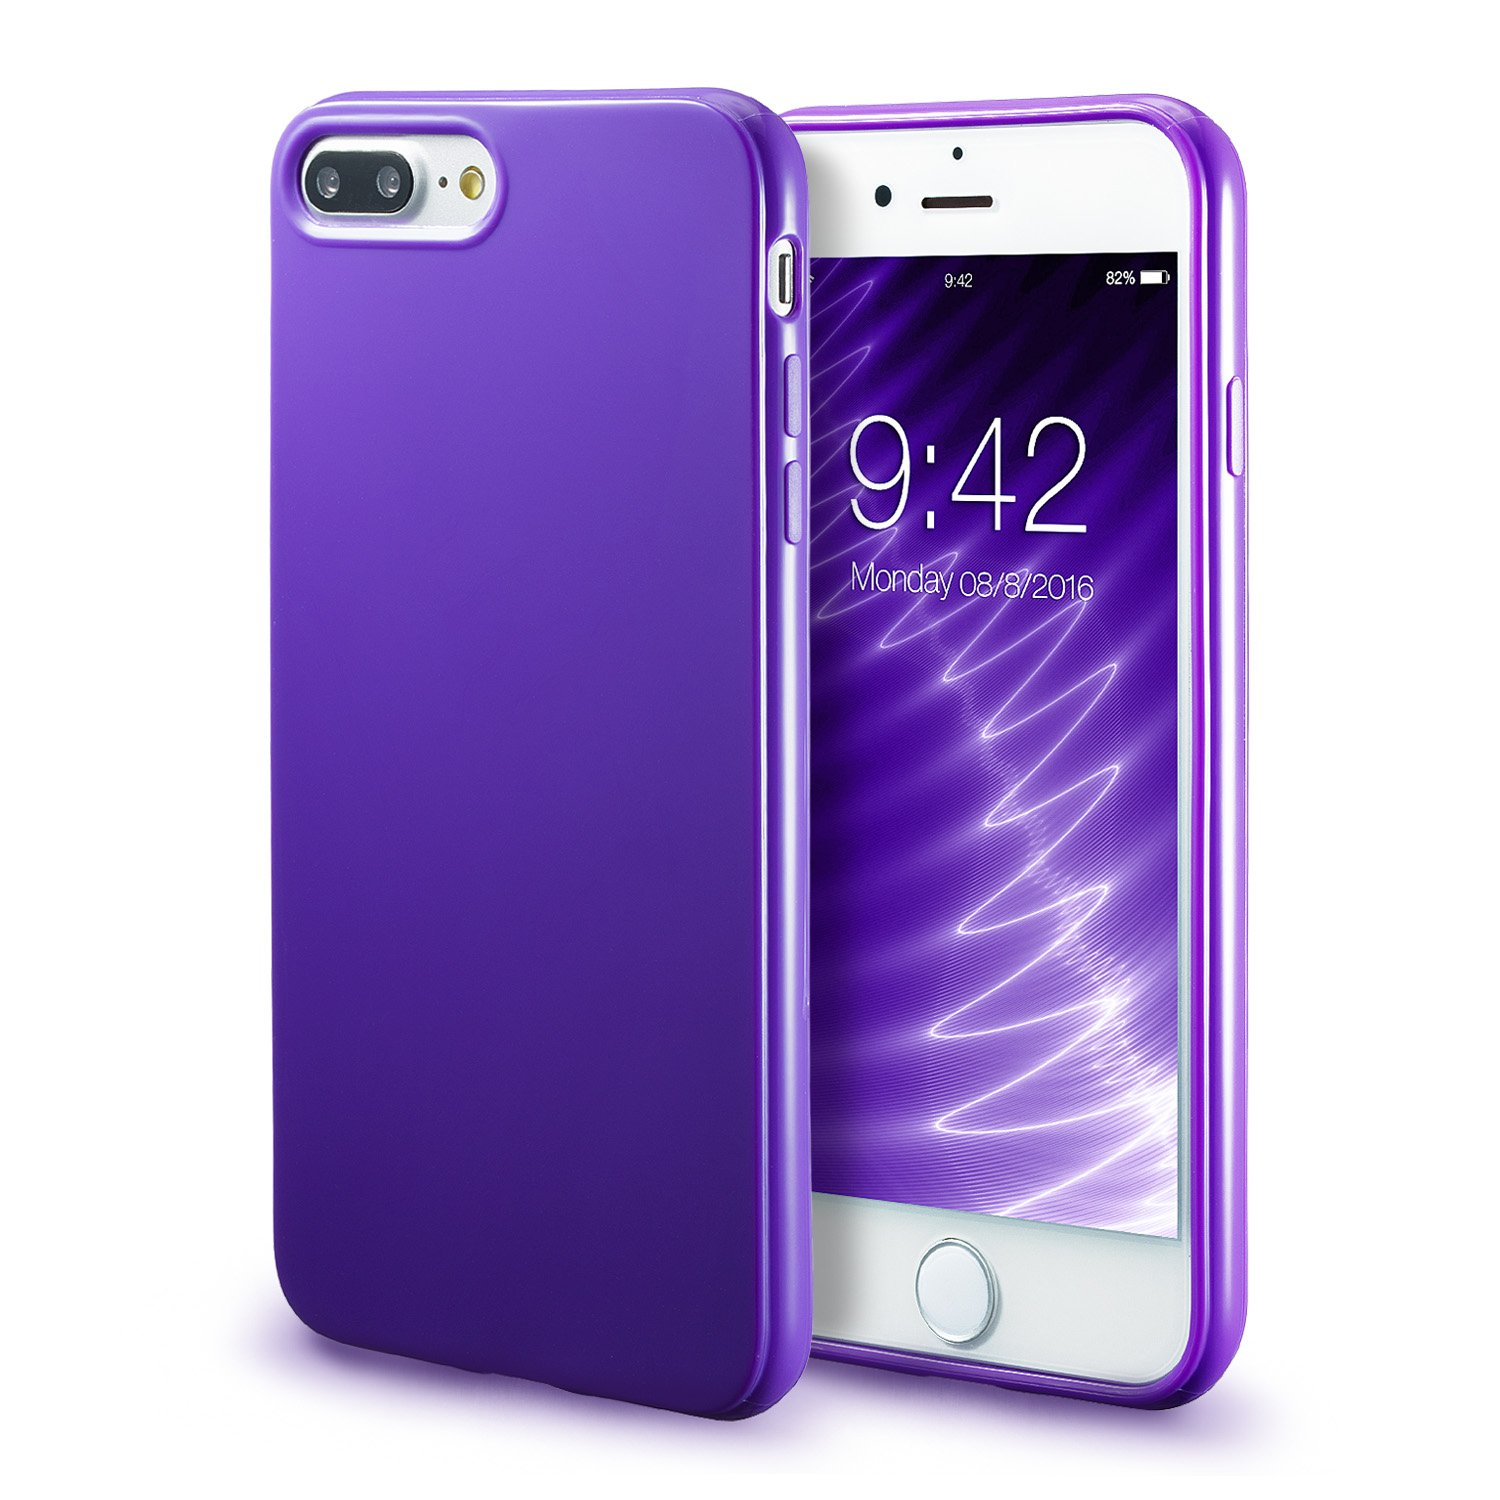 pretty nice 7f39c 830bc iPhone 7 Plus Purple Case/iPhone 8 Plus Purple Case, technext020 Shockproof  Ultra Slim Fit Silicone TPU Soft Gel Rubber Shock Resistance Protective ...